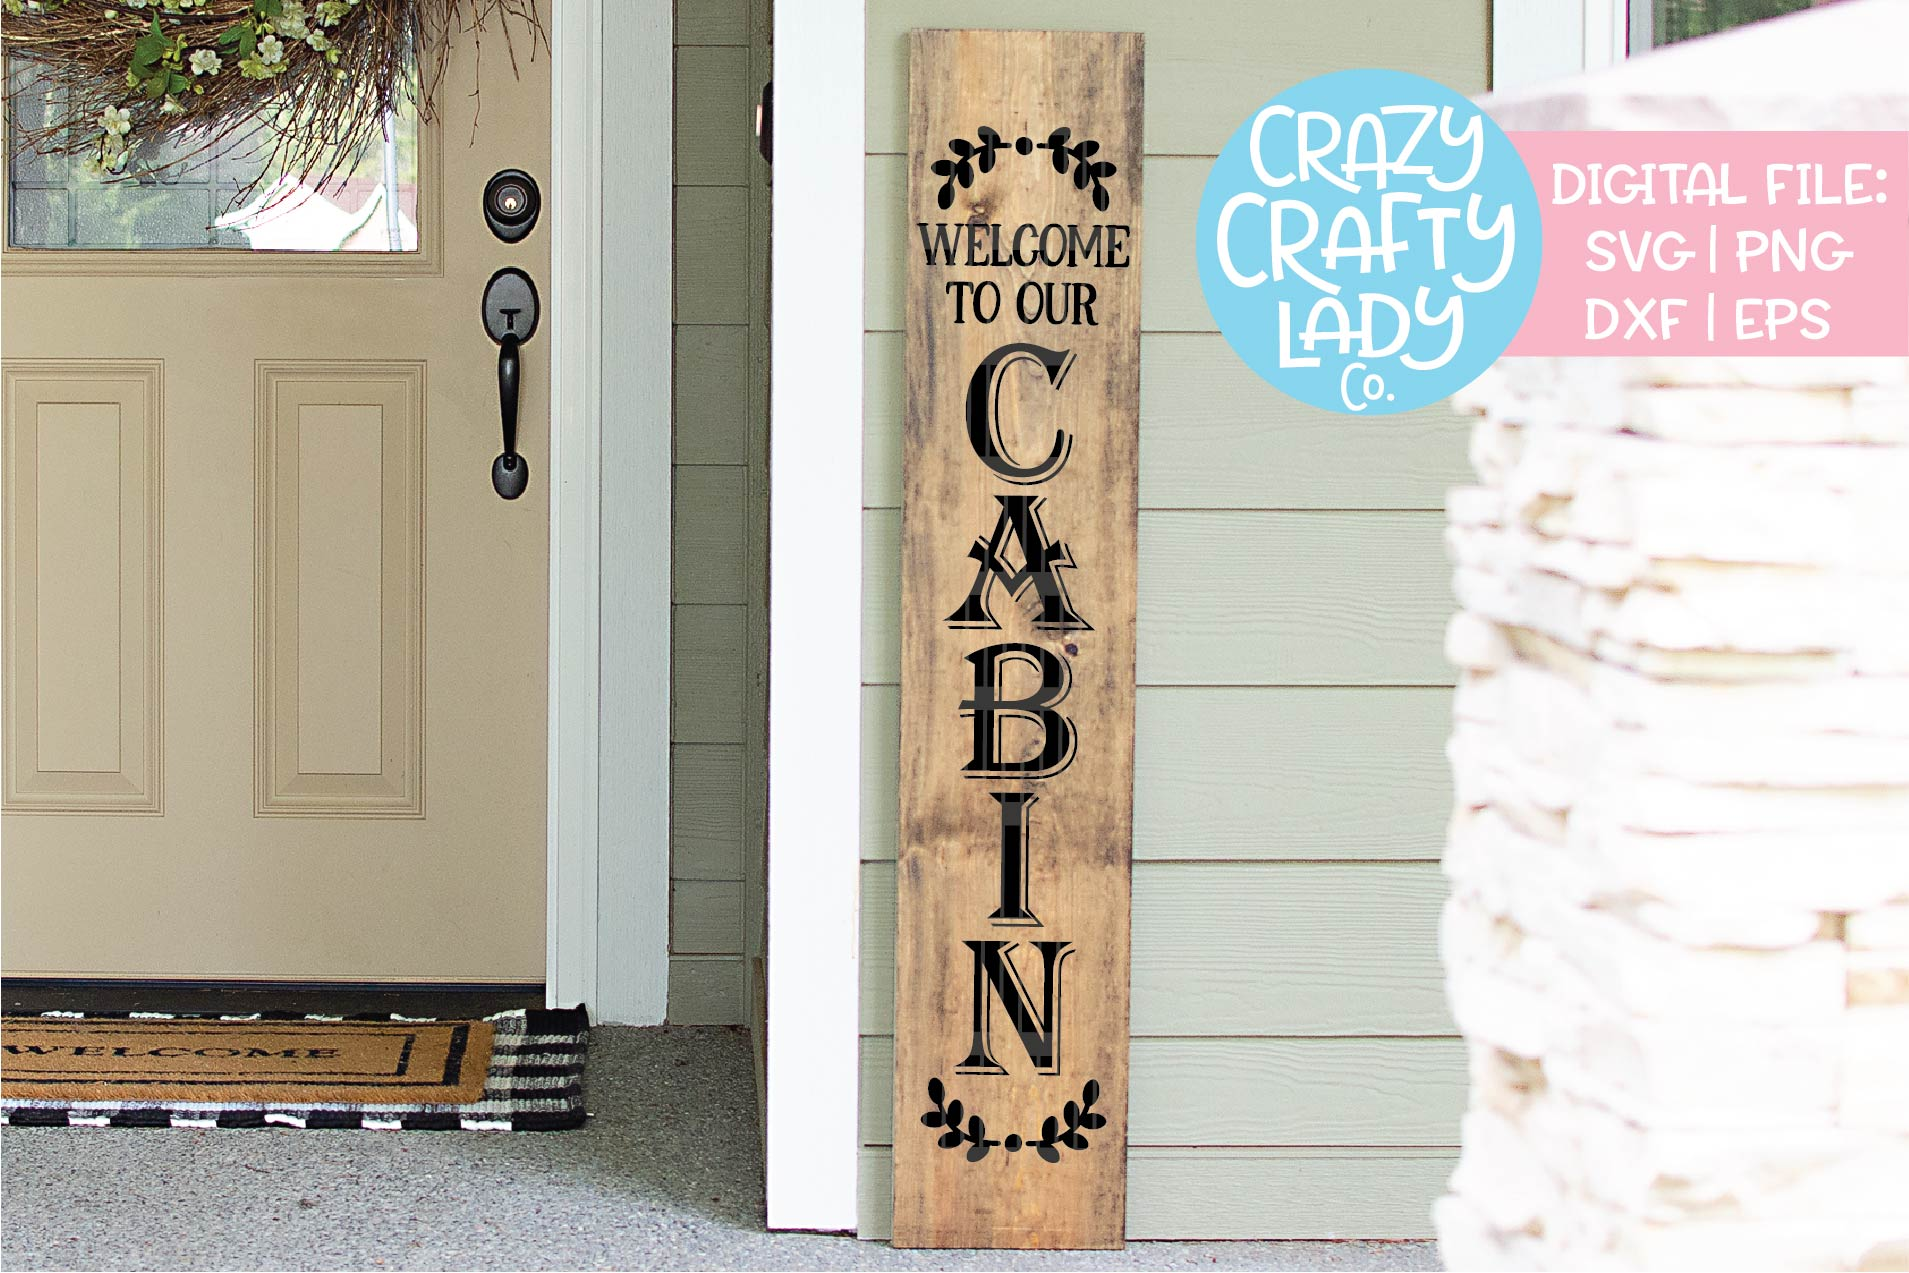 Welcome to Our Cabin Porch Sign SVG DXF EPS PNG Cut File example image 1